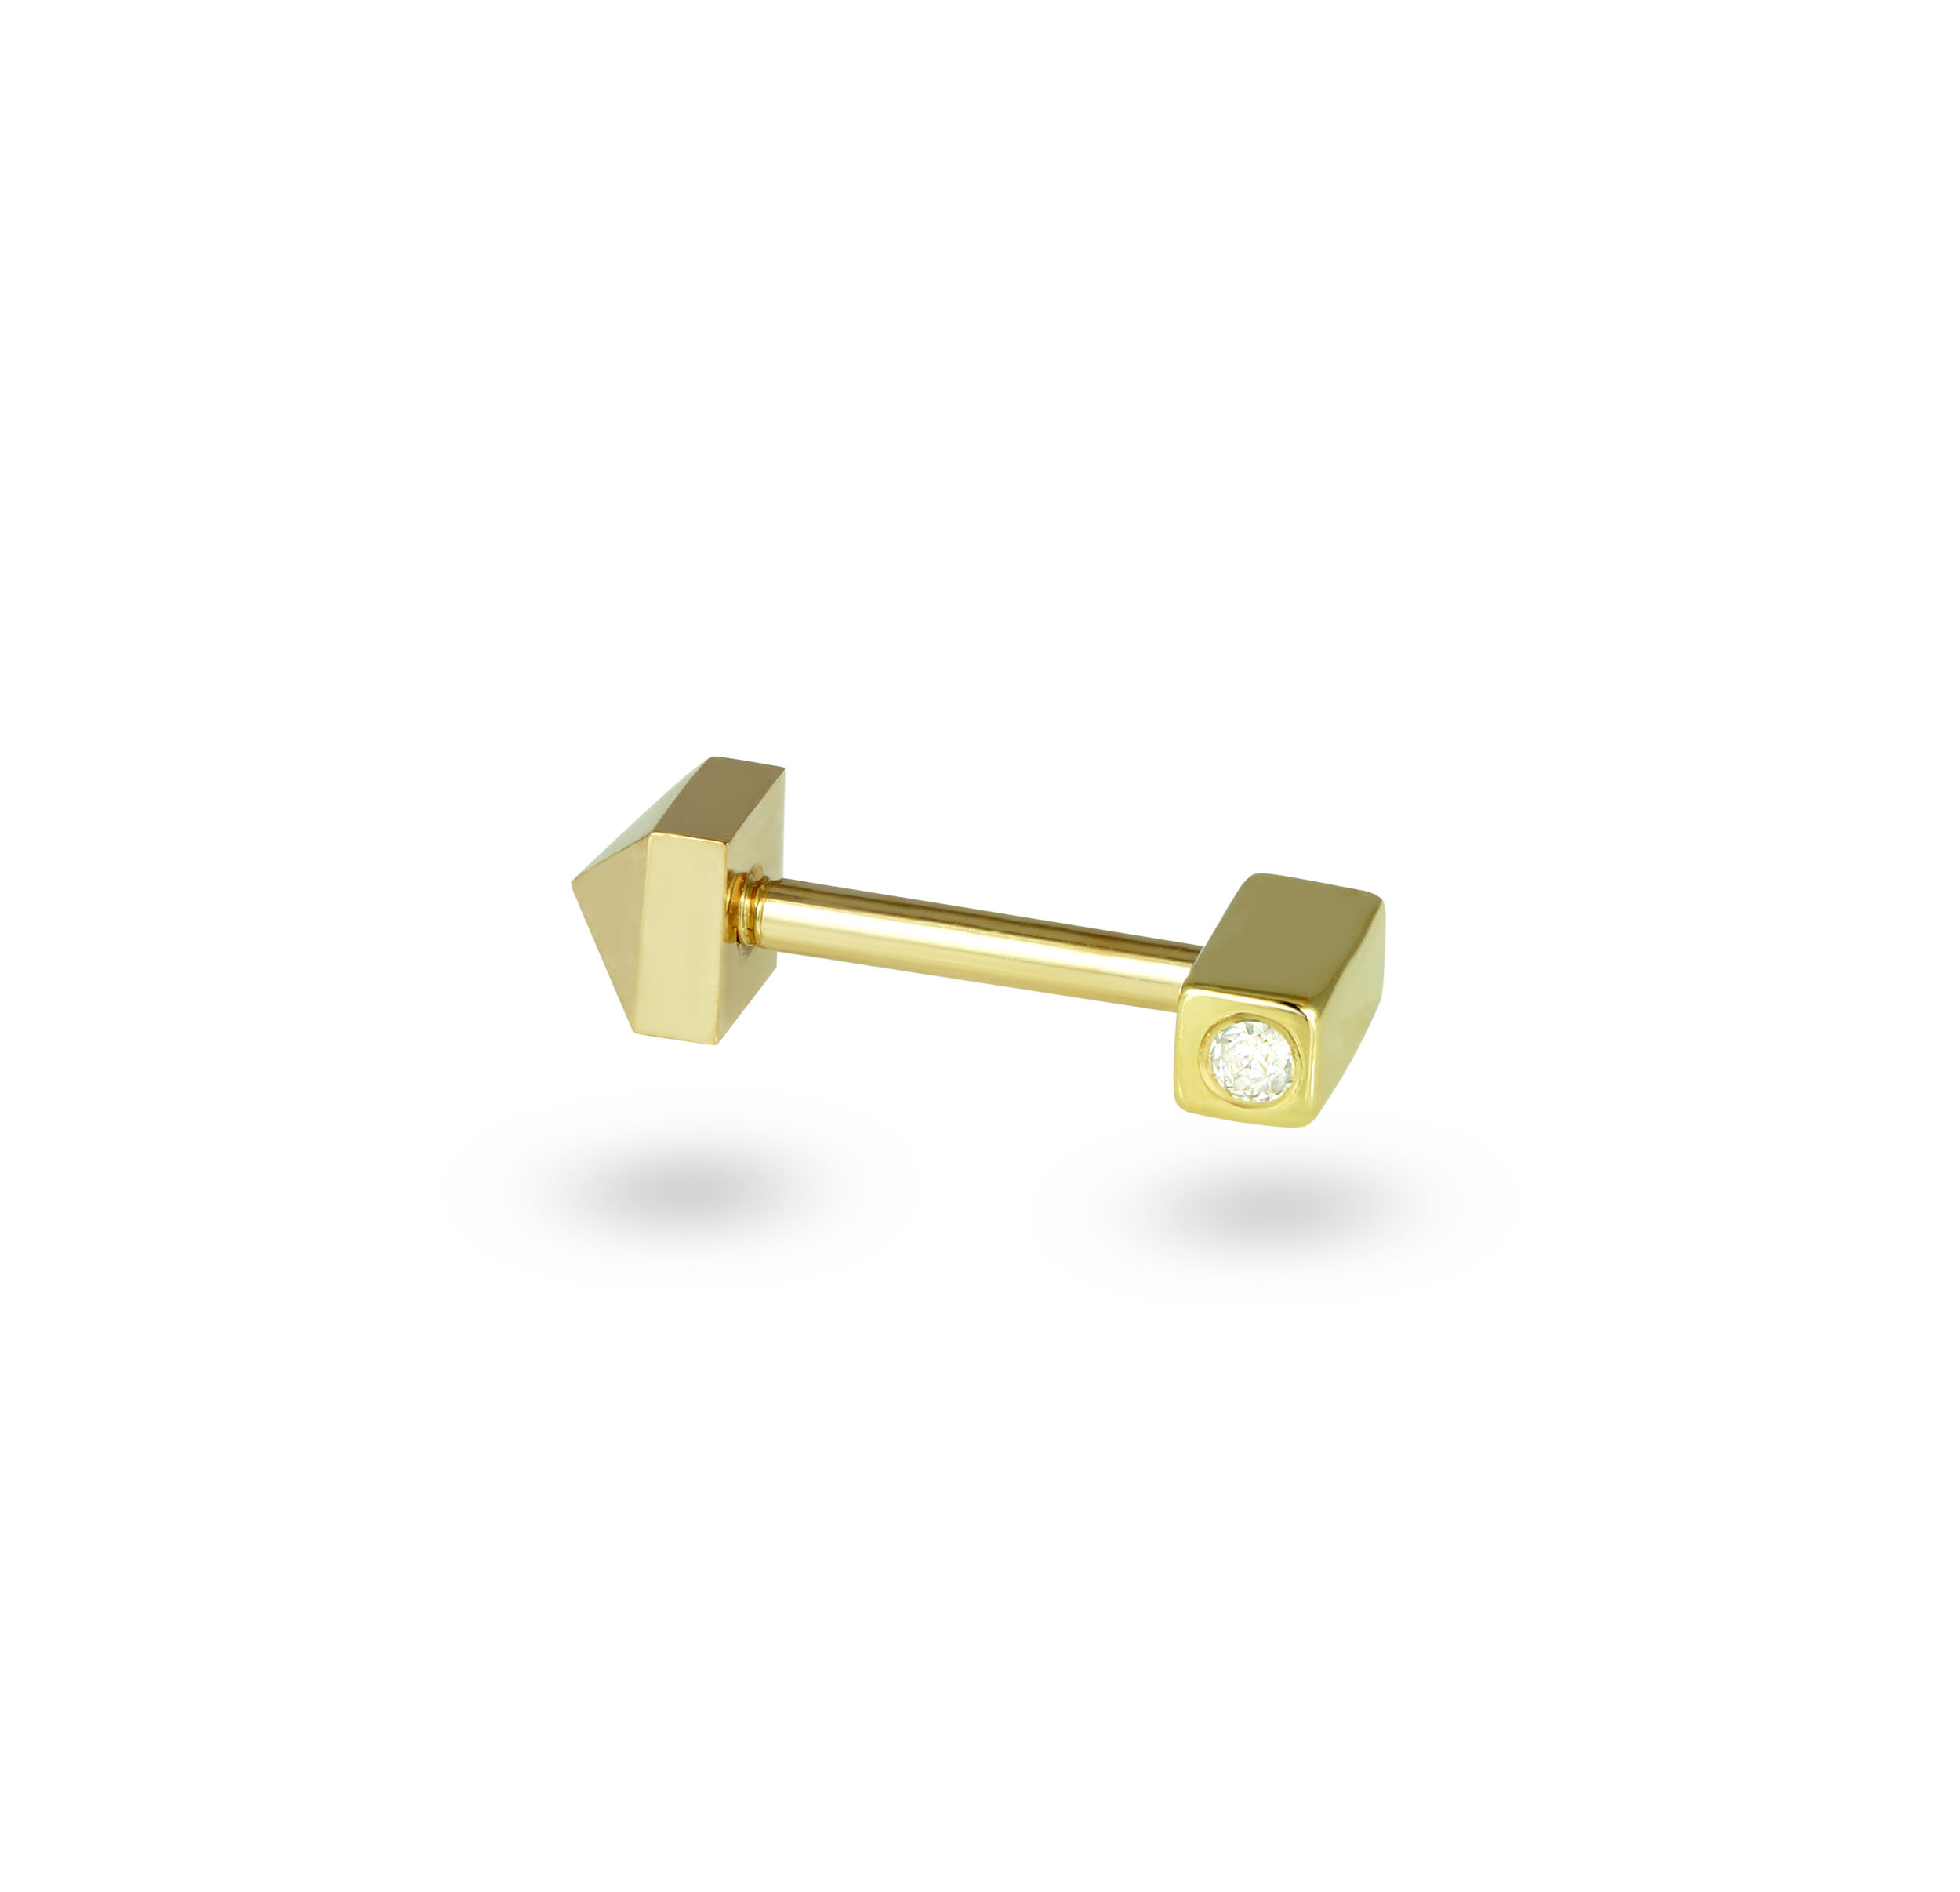 yellow-gold–plain-minimalistic–piercing–studs-screw-backs-buy-online-lena-cohen-uk-free-delivery-luxury-cartilage-earrings-helix-tragus-earlobe-pinterest-uk